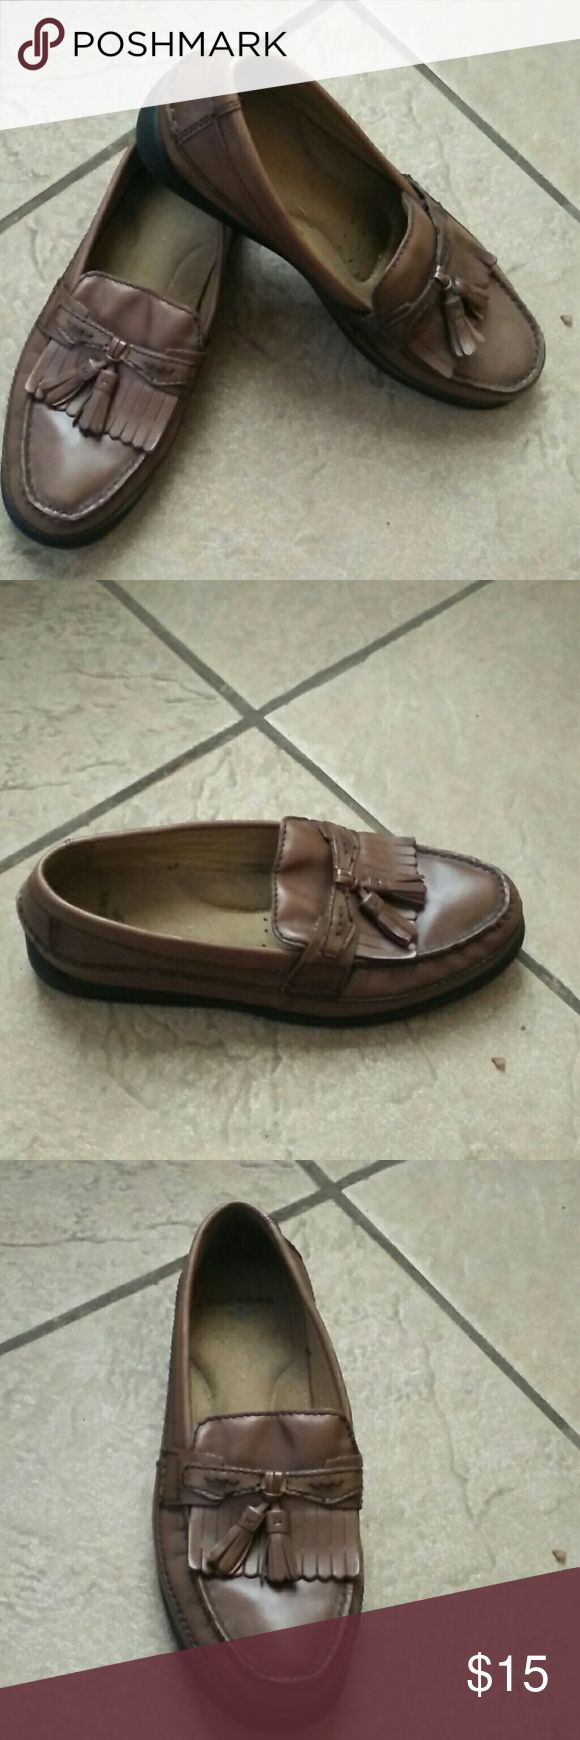 Dockers mens brown loafers Genuine leather.  Brown loafers with tassels . Dockers Shoes Loafers & Slip-Ons